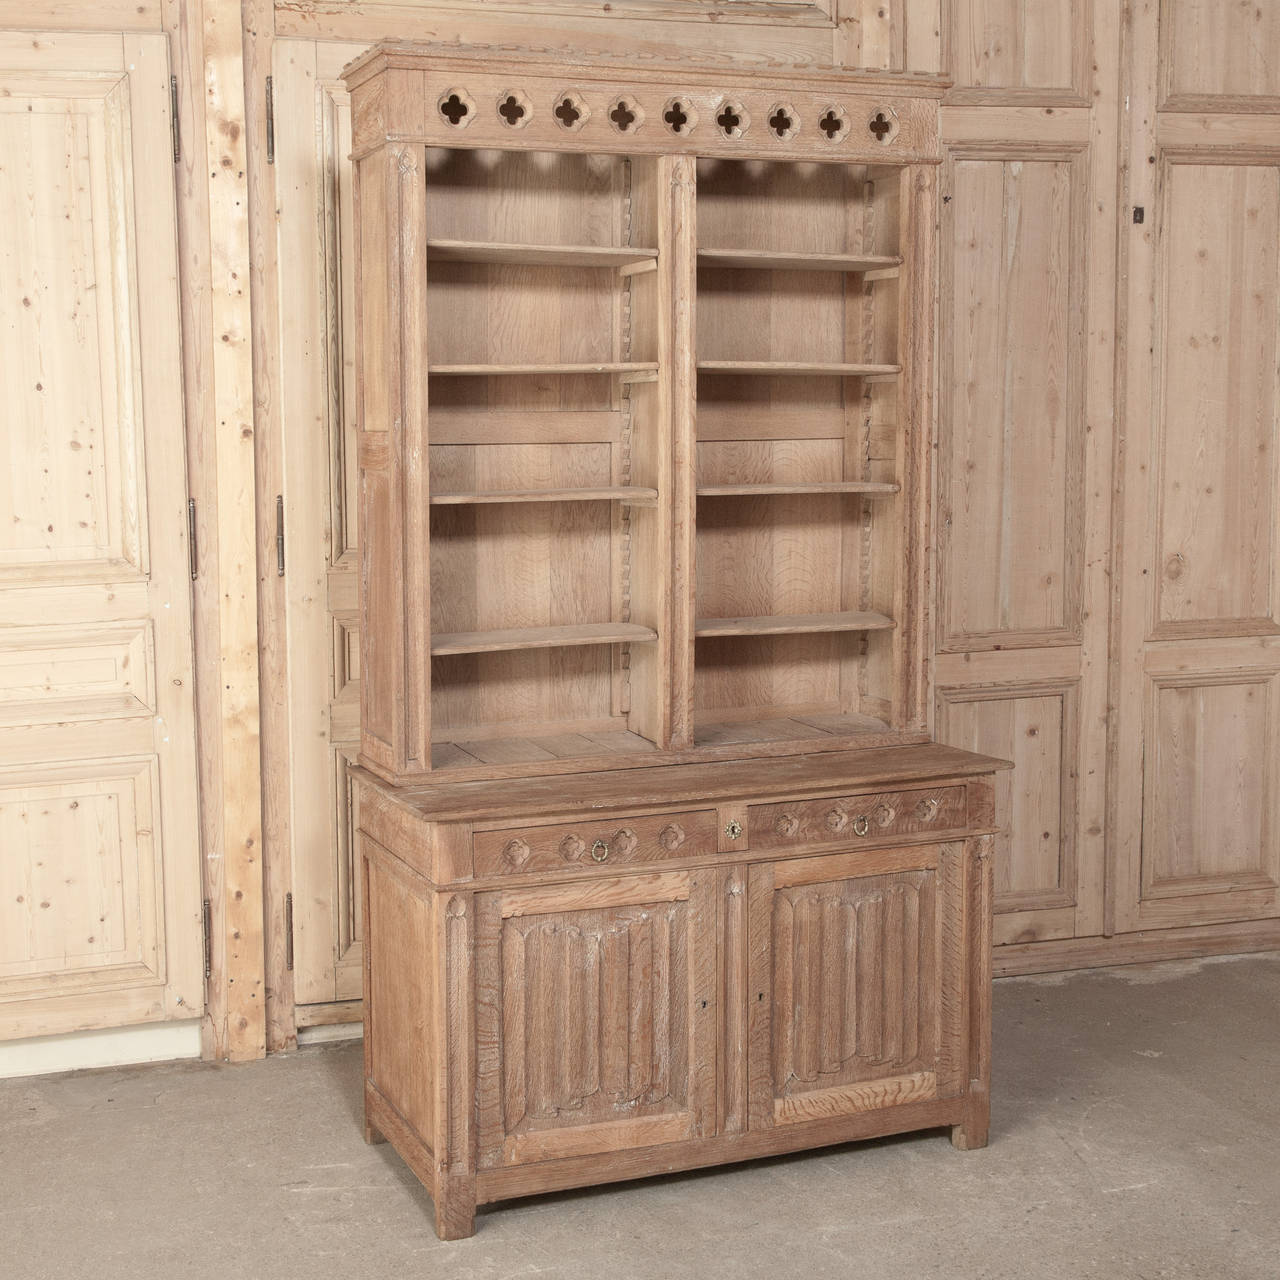 19th Century French Gothic Revival Stripped Solid Oak Bookcase 3